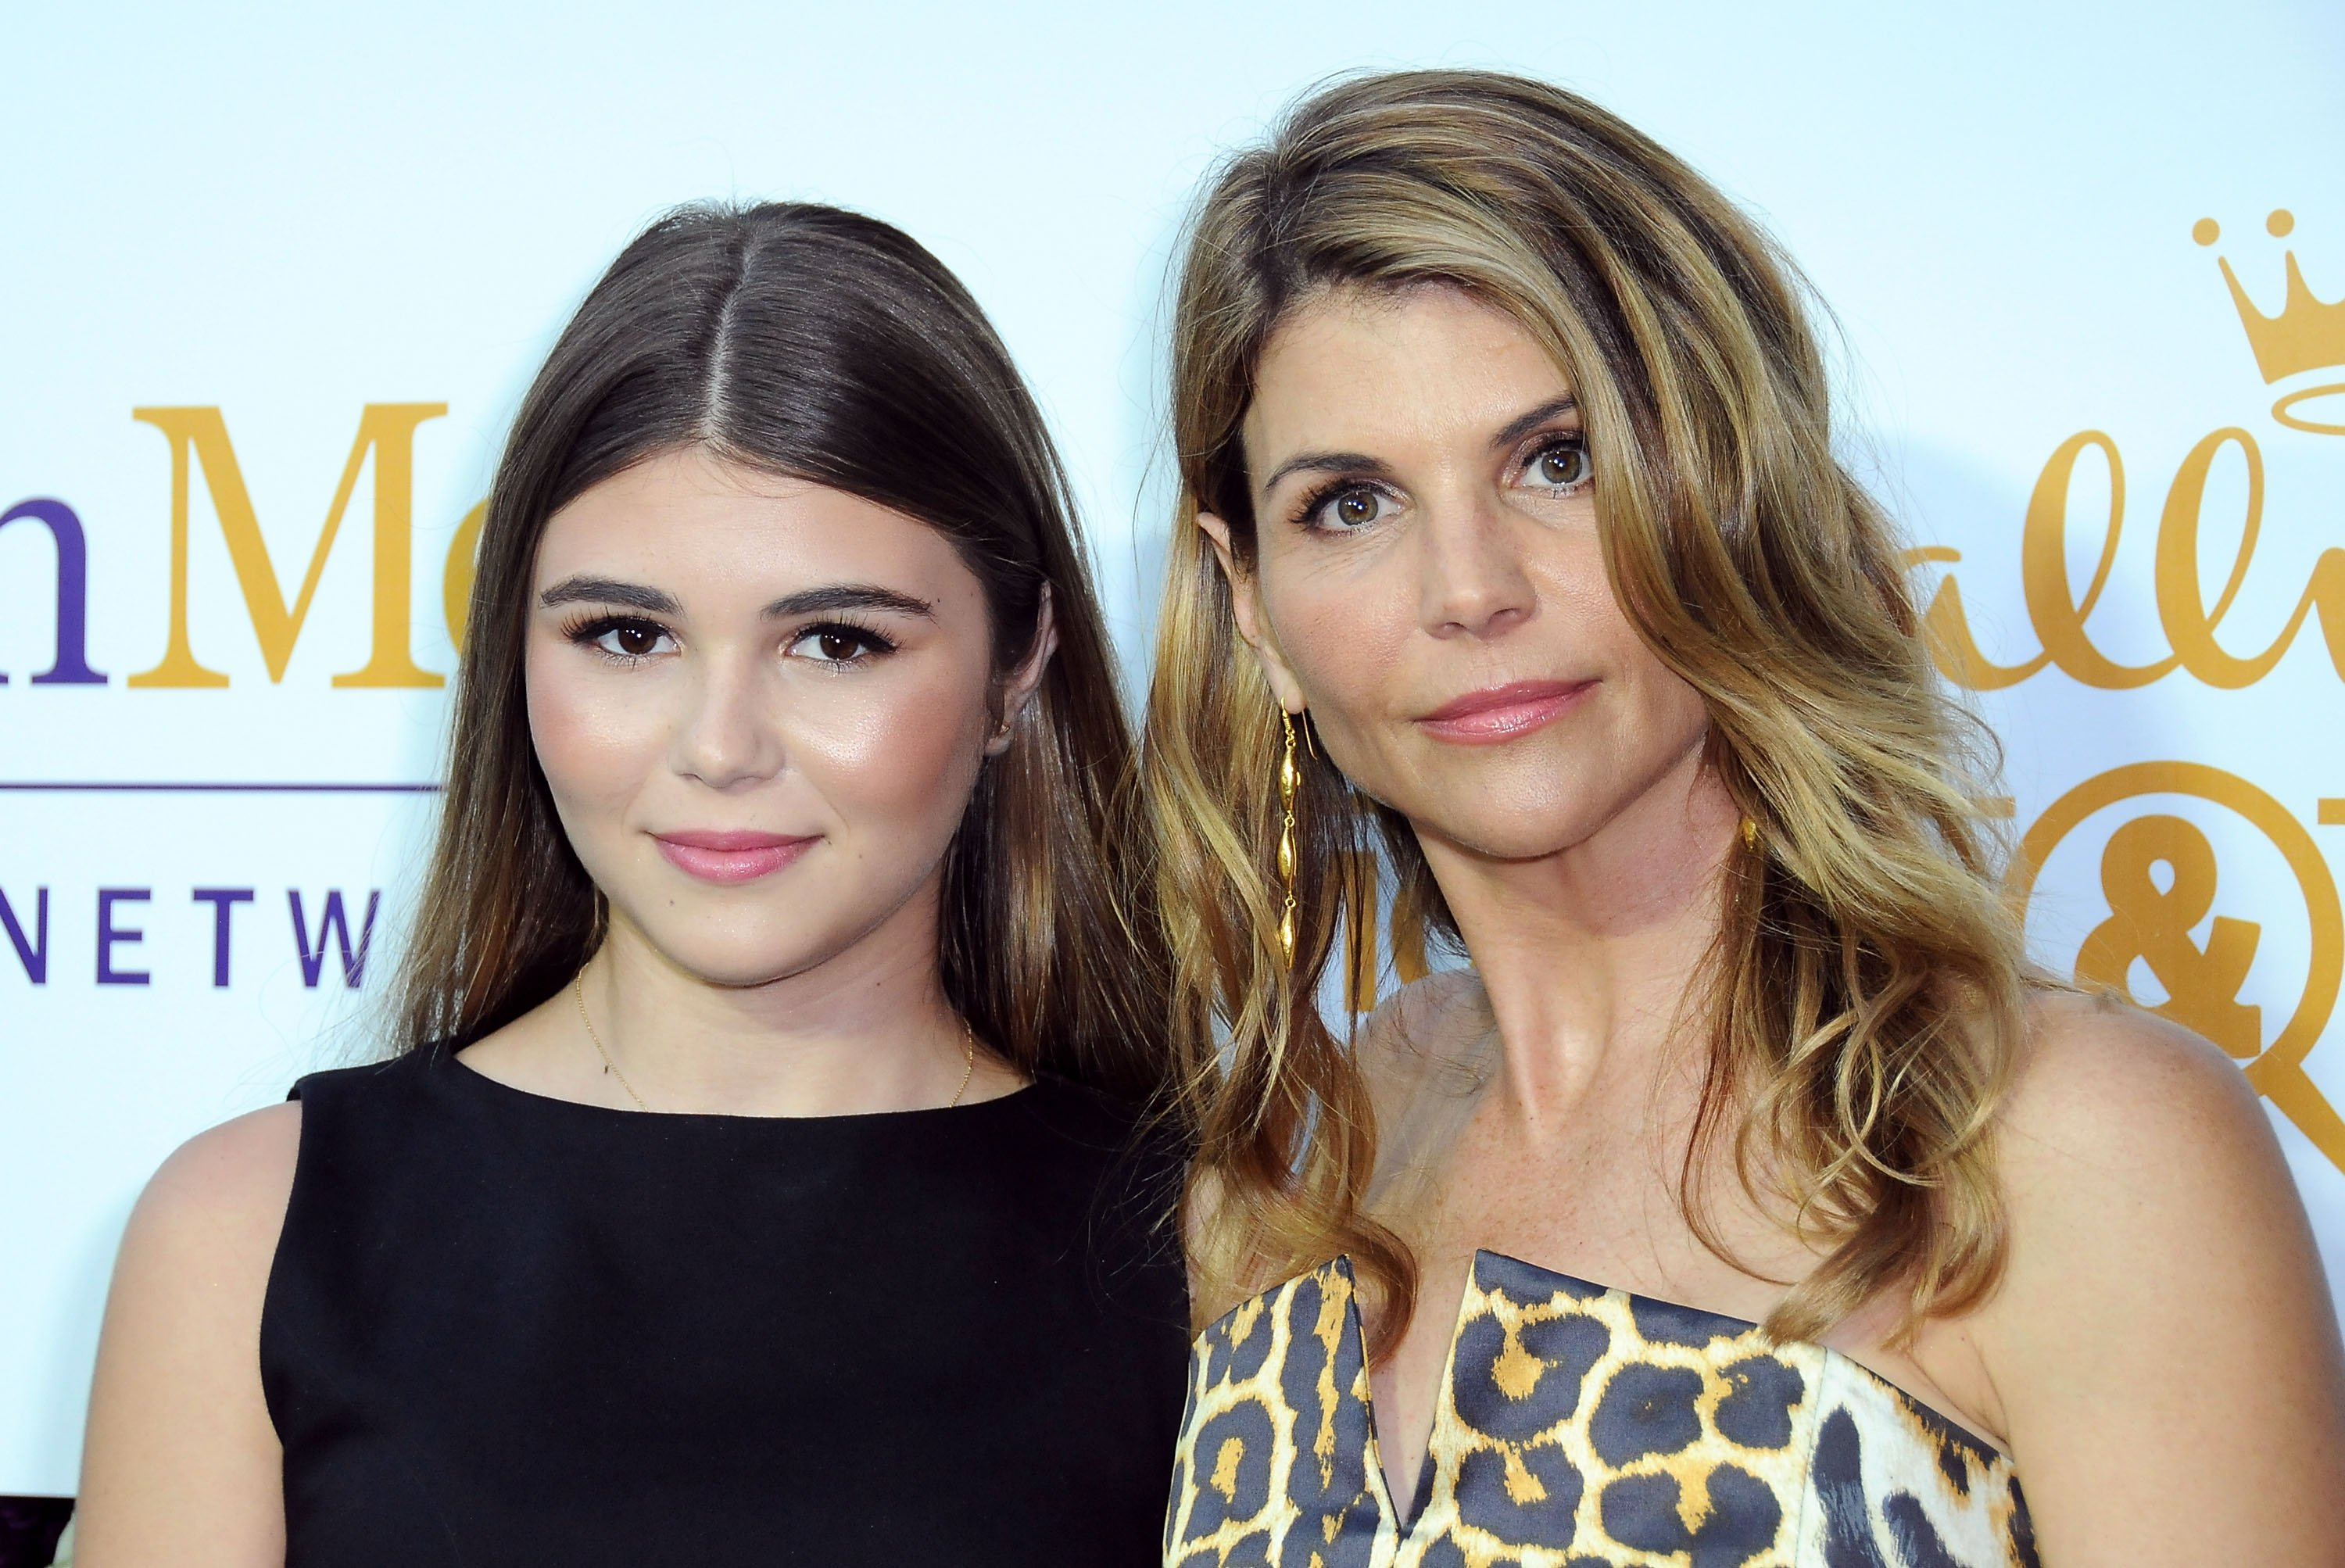 Lori Loughlin and her daughter Olivia Jade at a Hallmark event | Photo: Getty Images